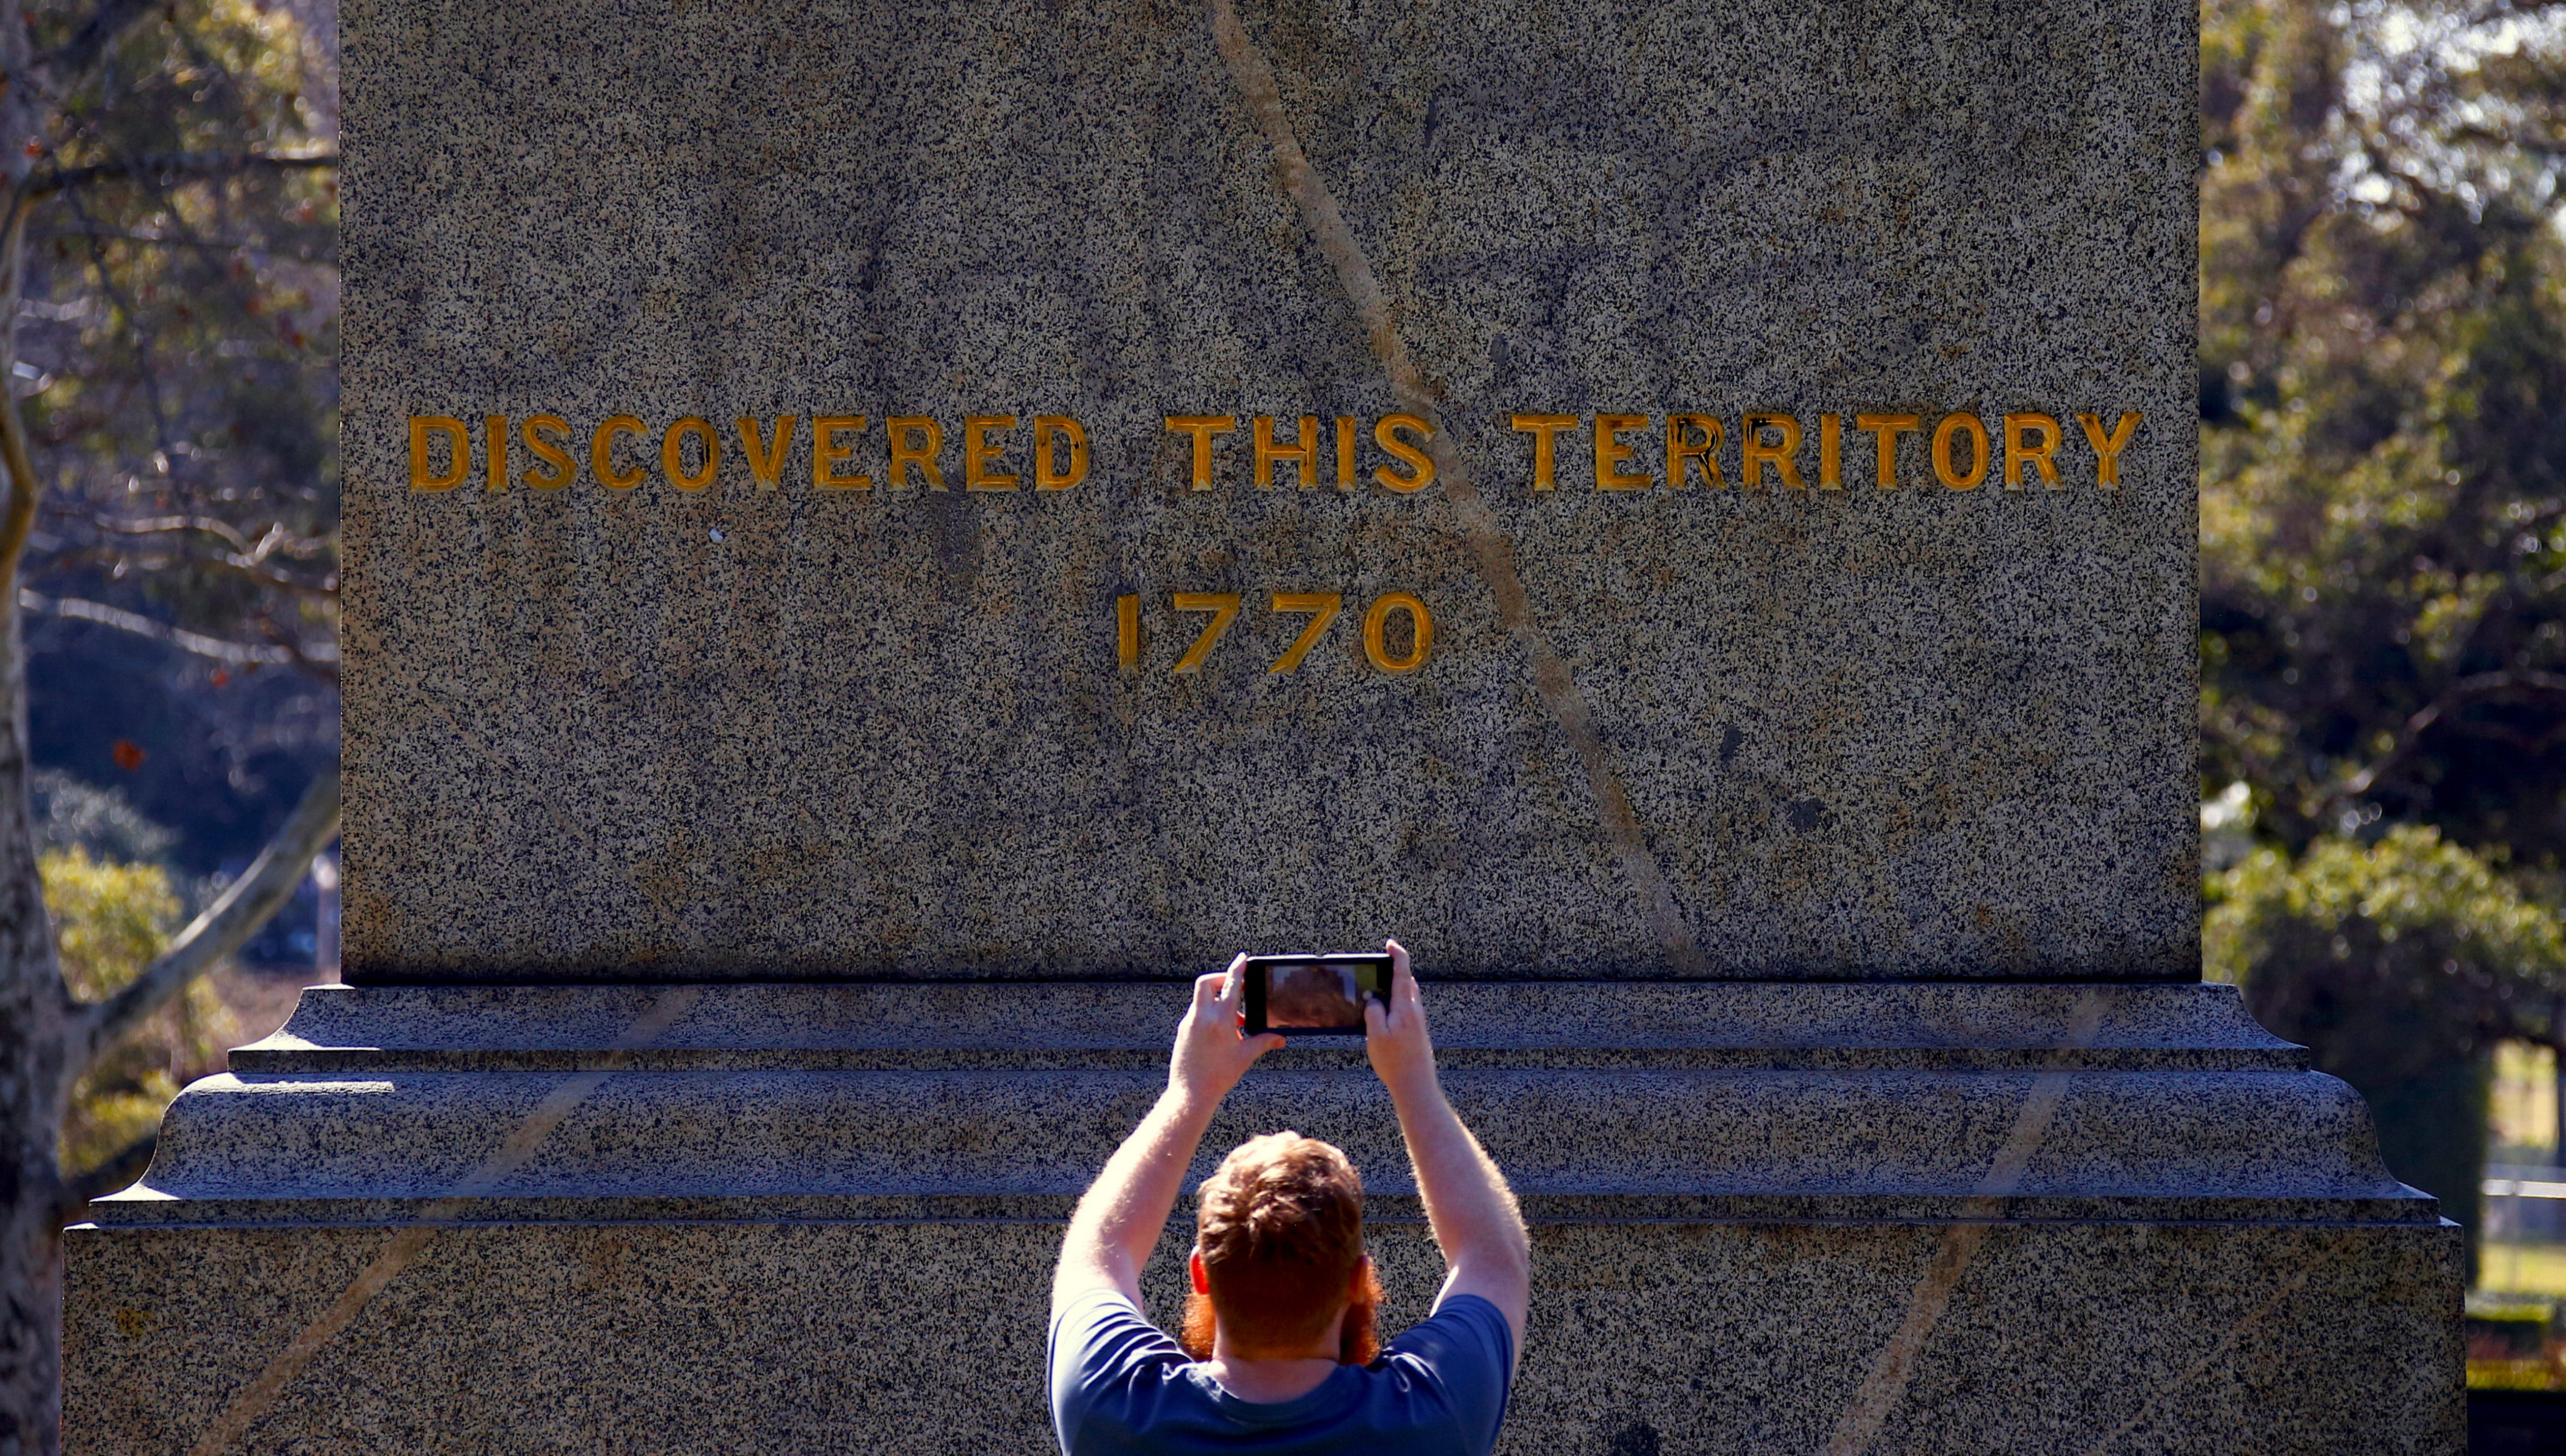 A member of the public uses his phone to take a photograph of the slogan 'Change the Date' that was sprayed over the inscription 'Discovered this Territory 1770' on a statue of British explorer Captain James Cook located in Hyde Park, in central Sydney